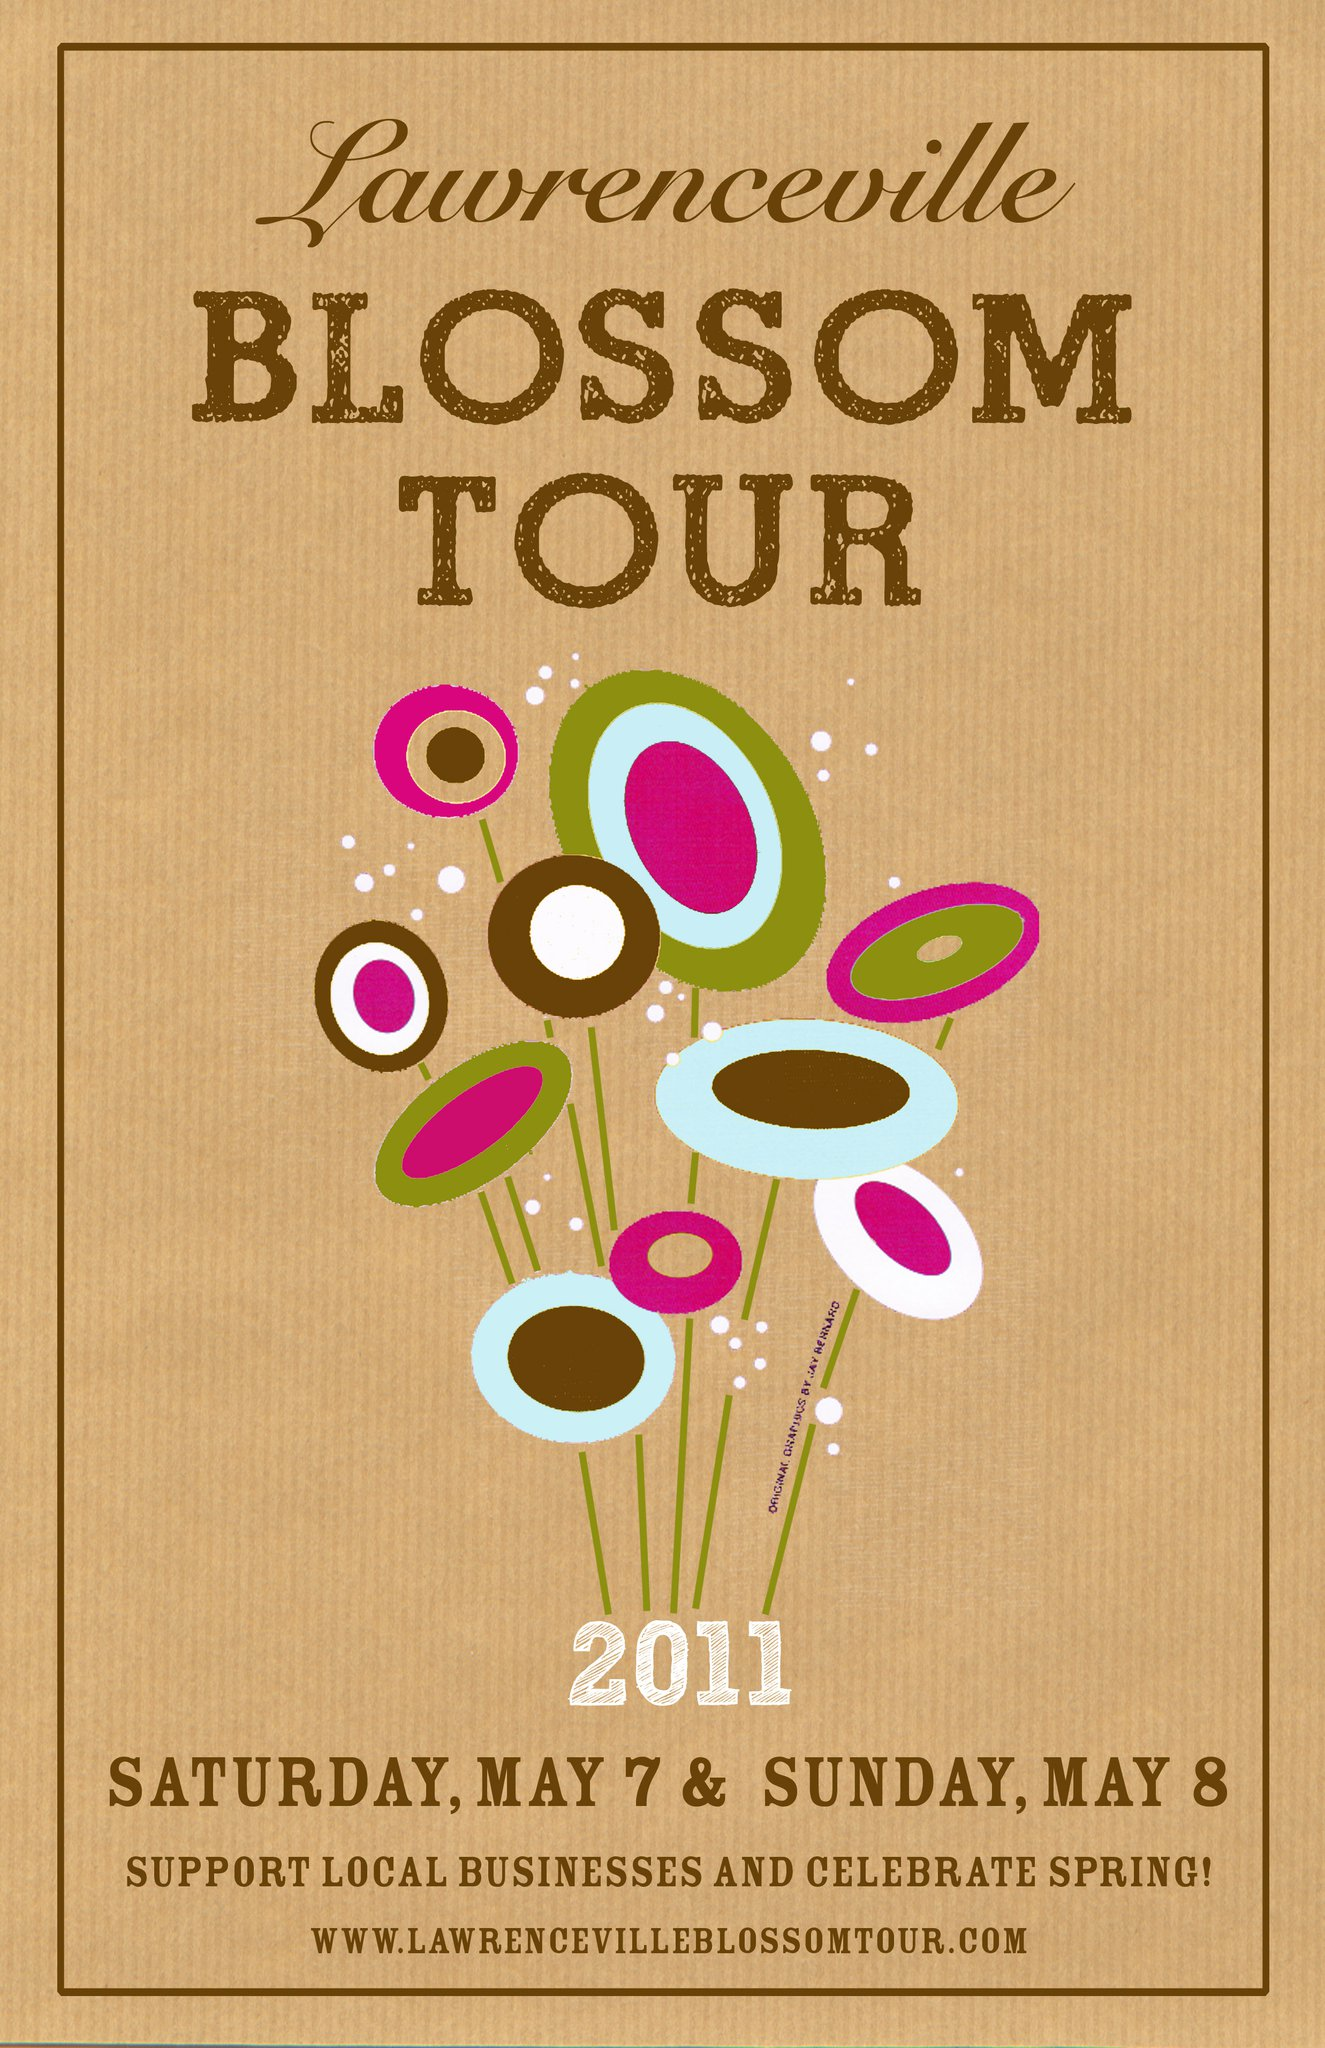 Lawrenceville Blossom Tour